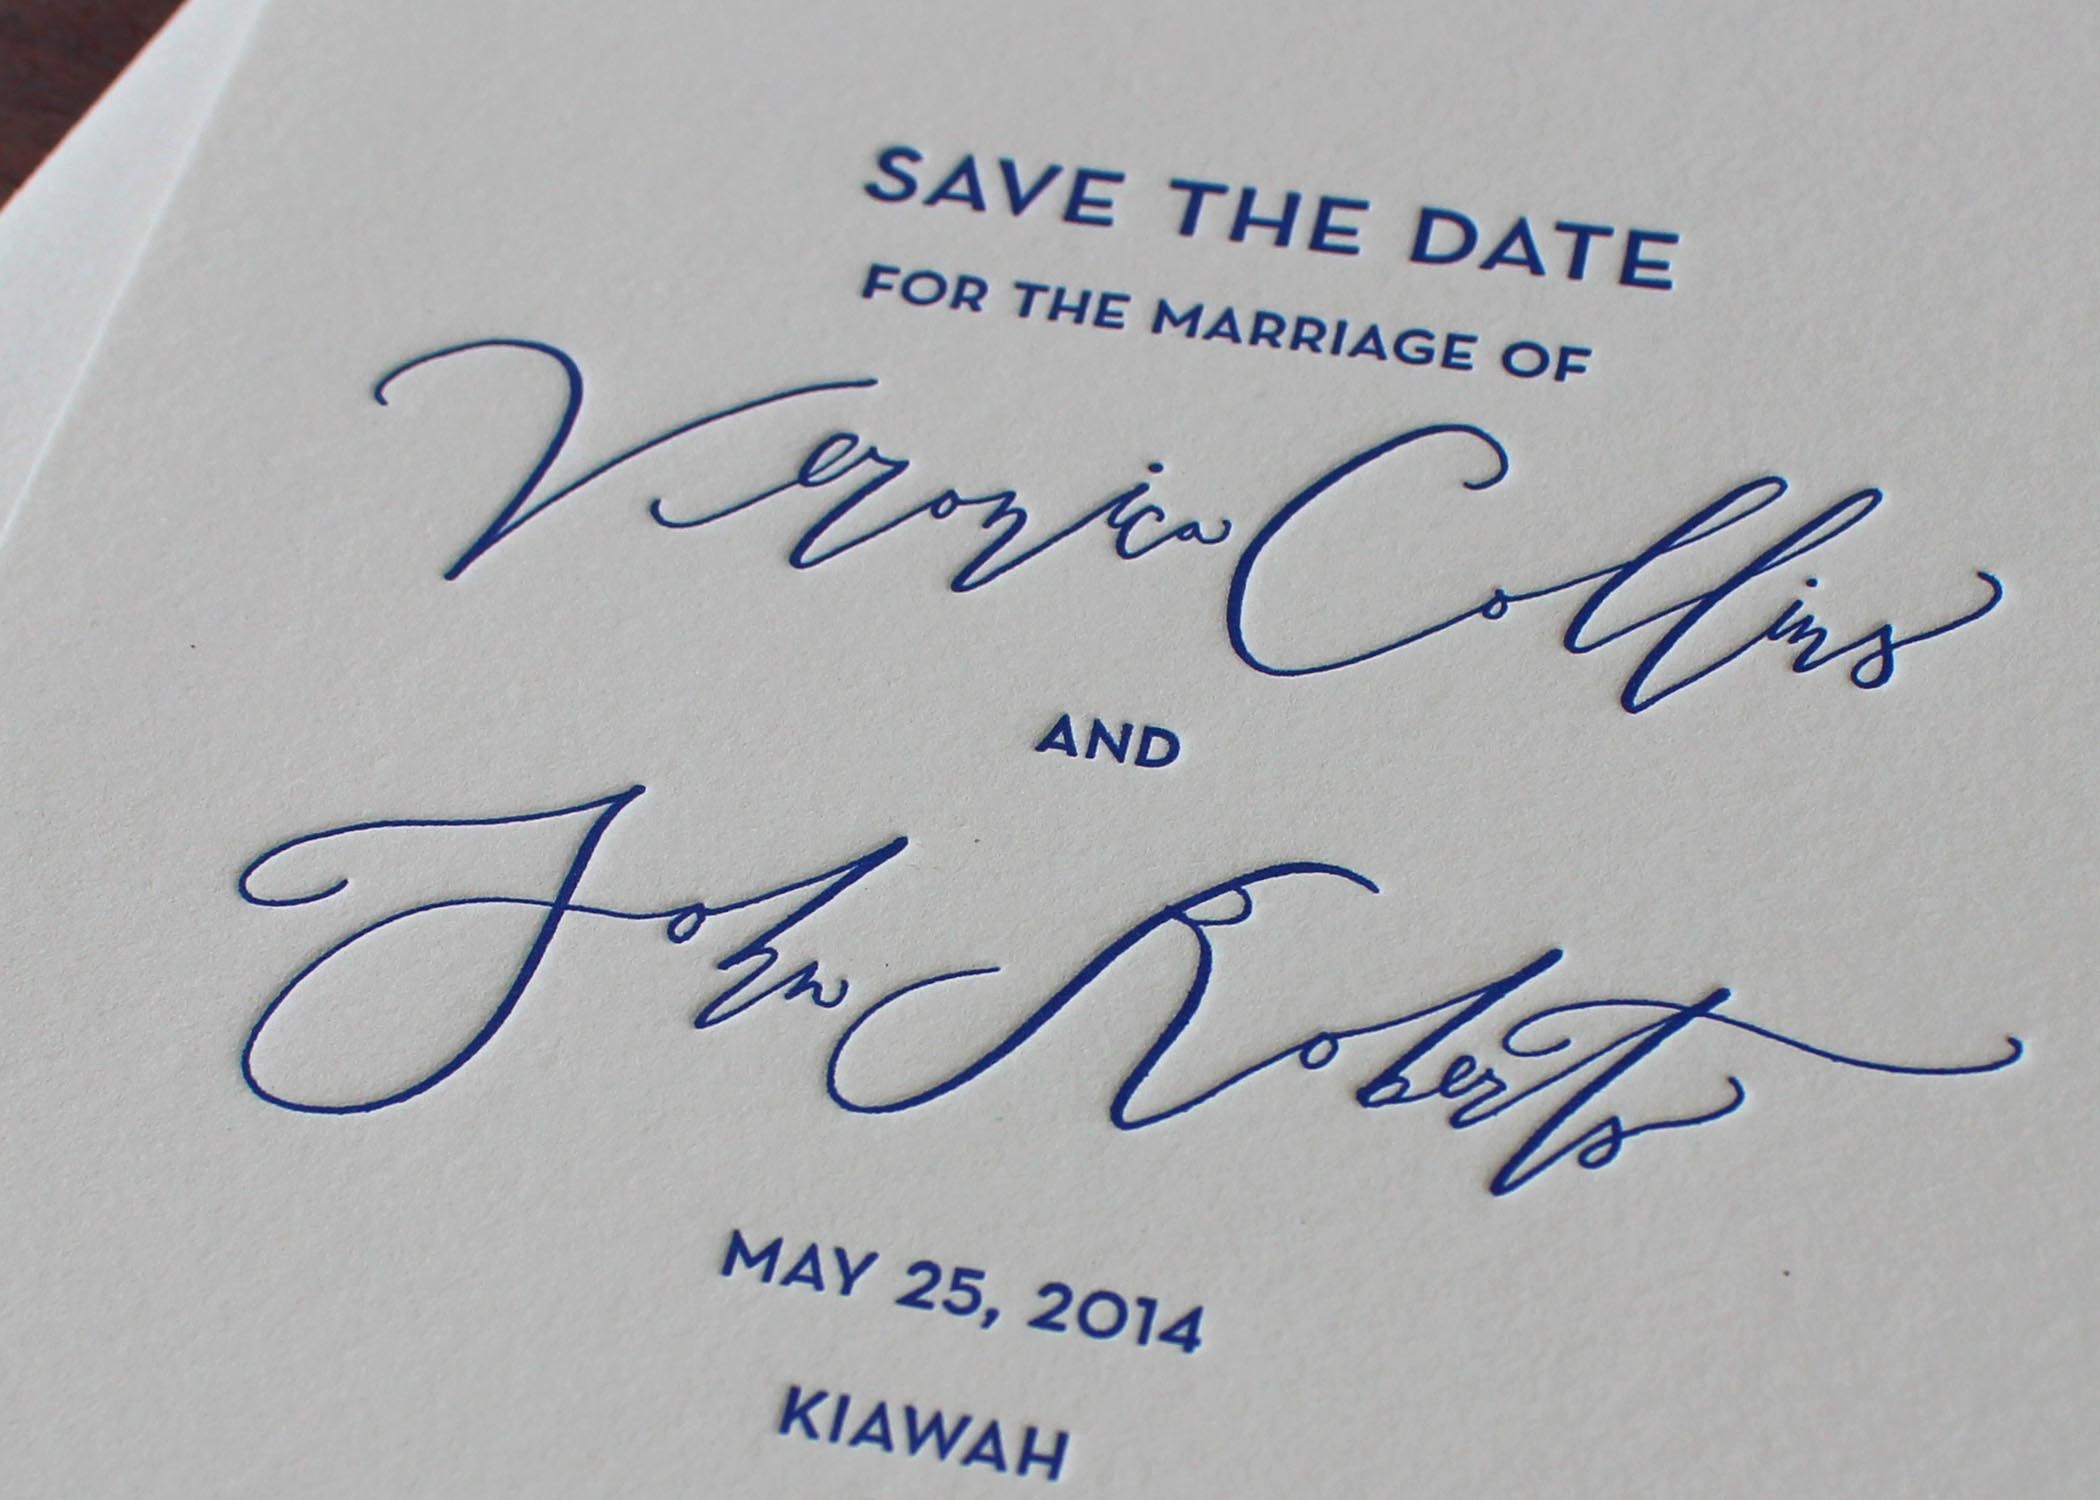 Detail of Betsy Dunlap calligraphy on letterpress printed Save the Date